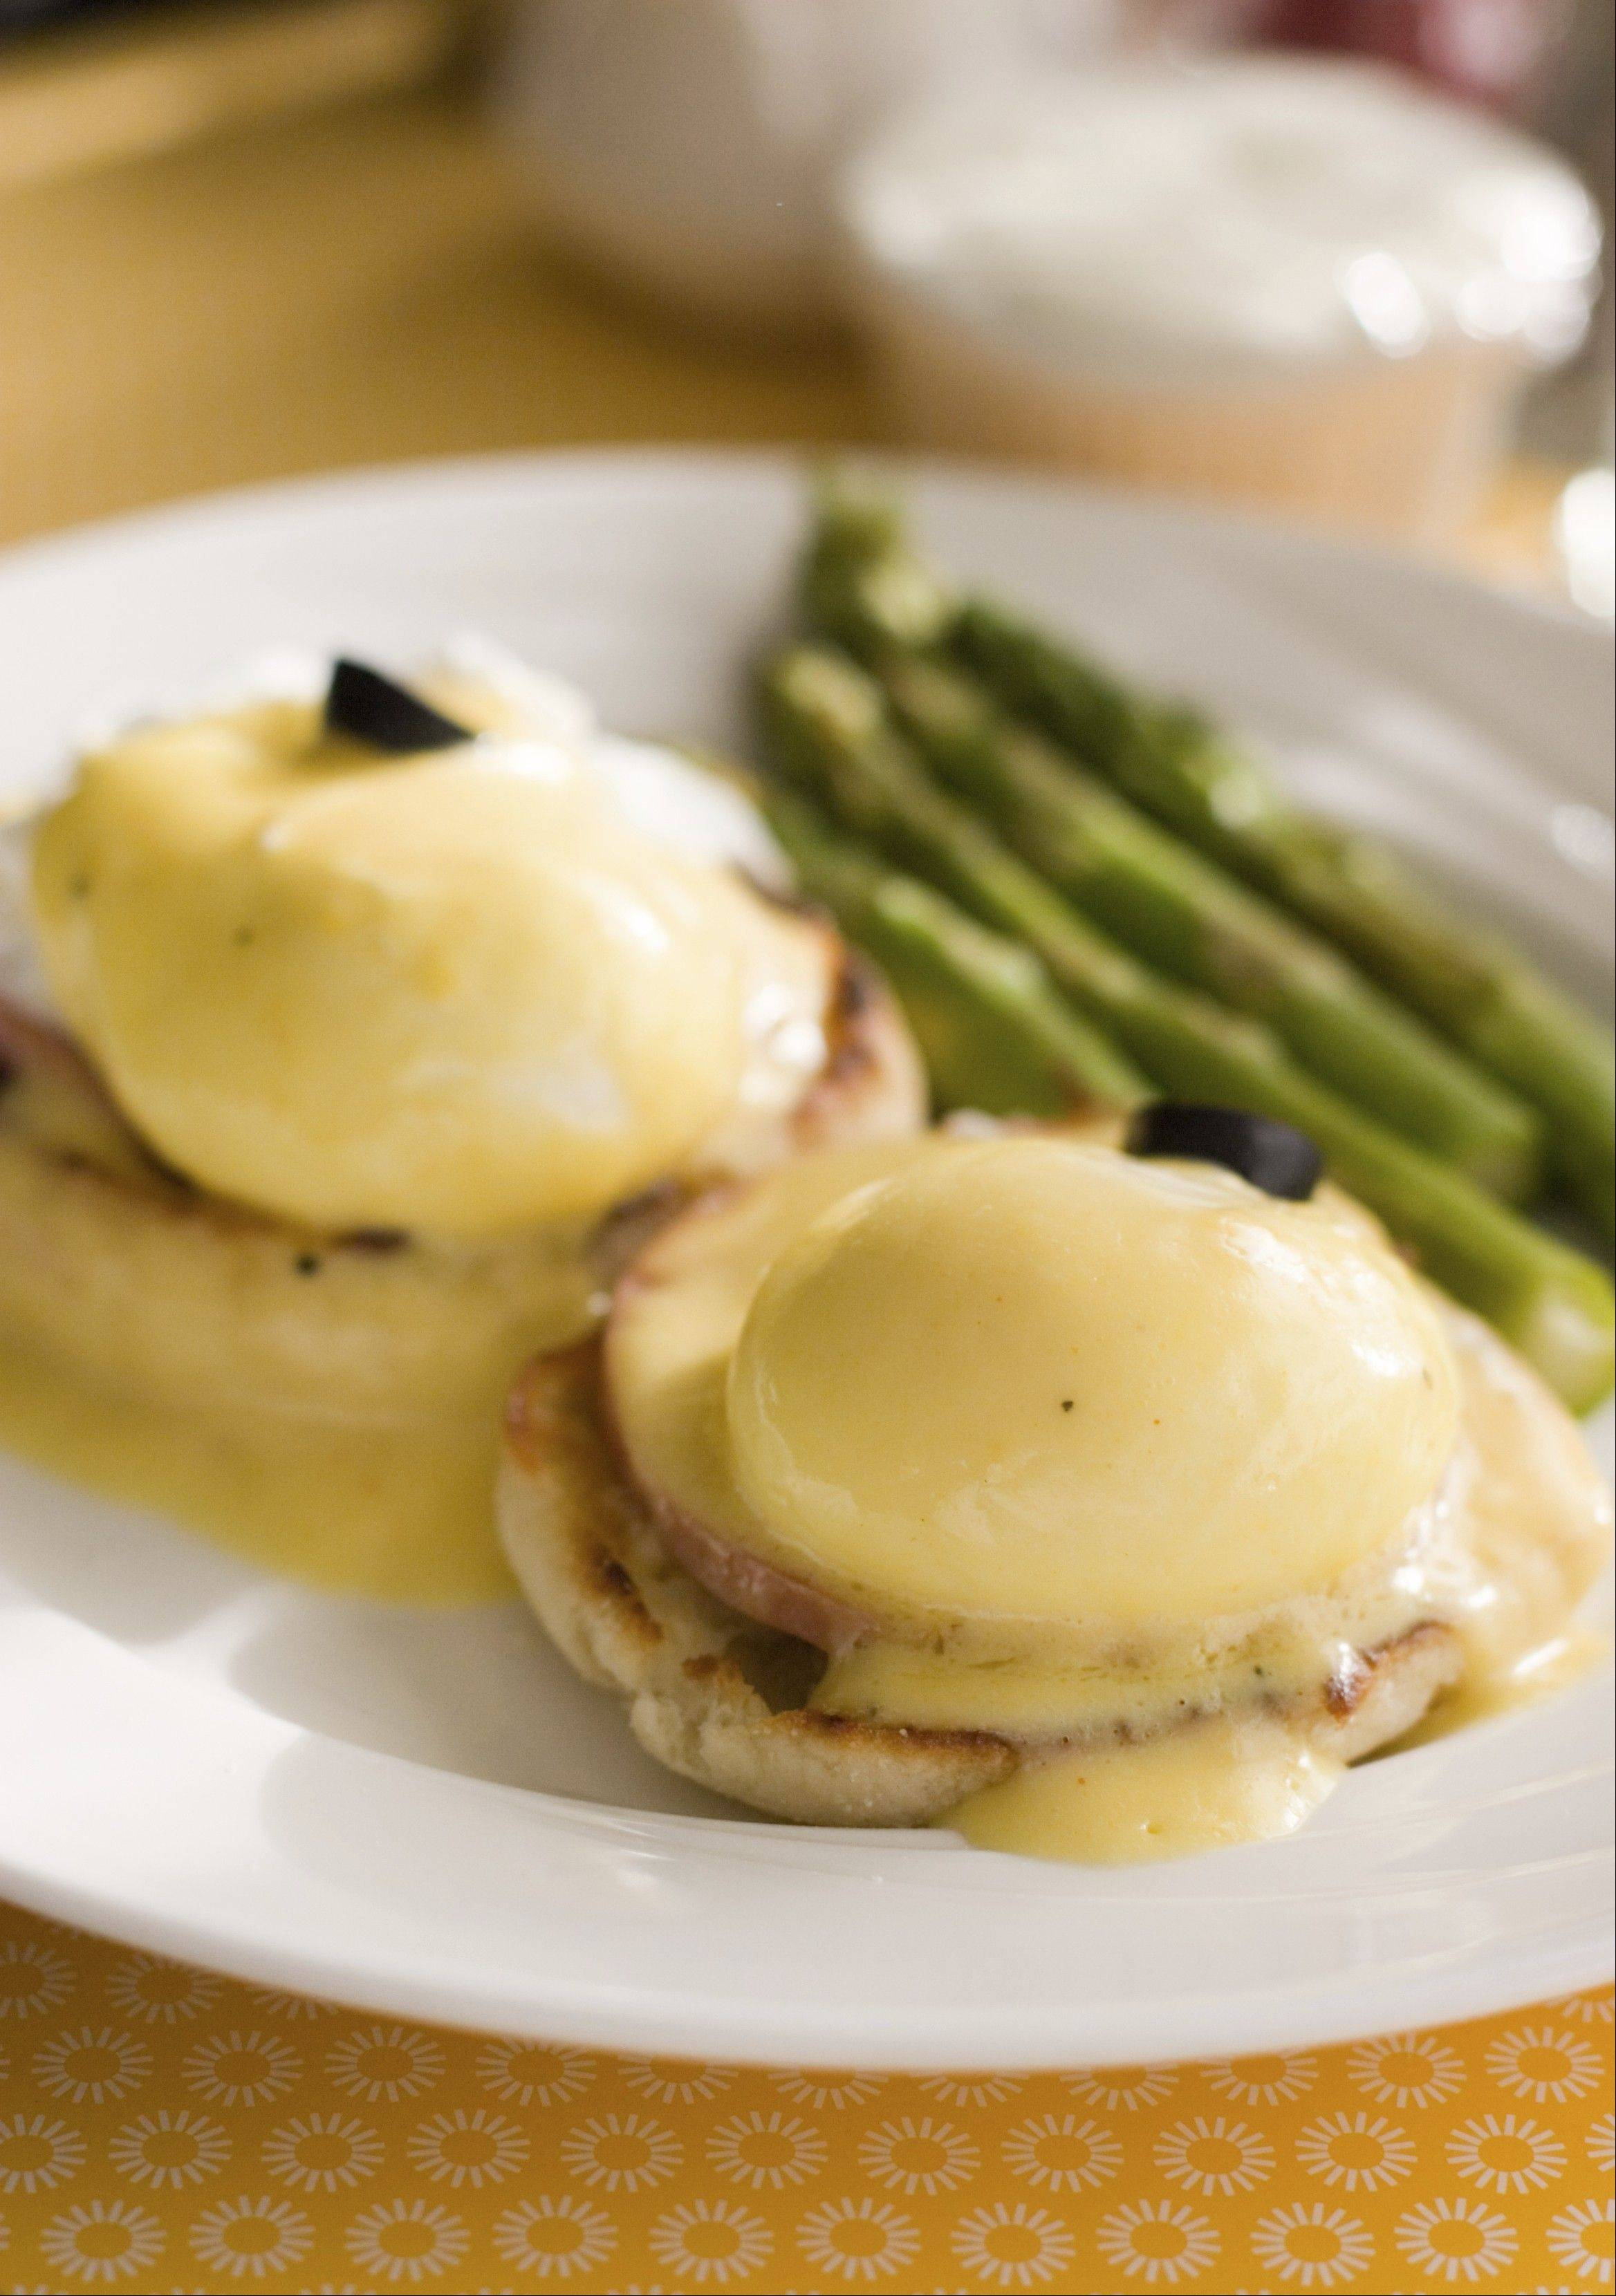 With a foolproof way to poach eggs and an easy hollandaise, eggs Benedict can be an at-home brunch favorite.